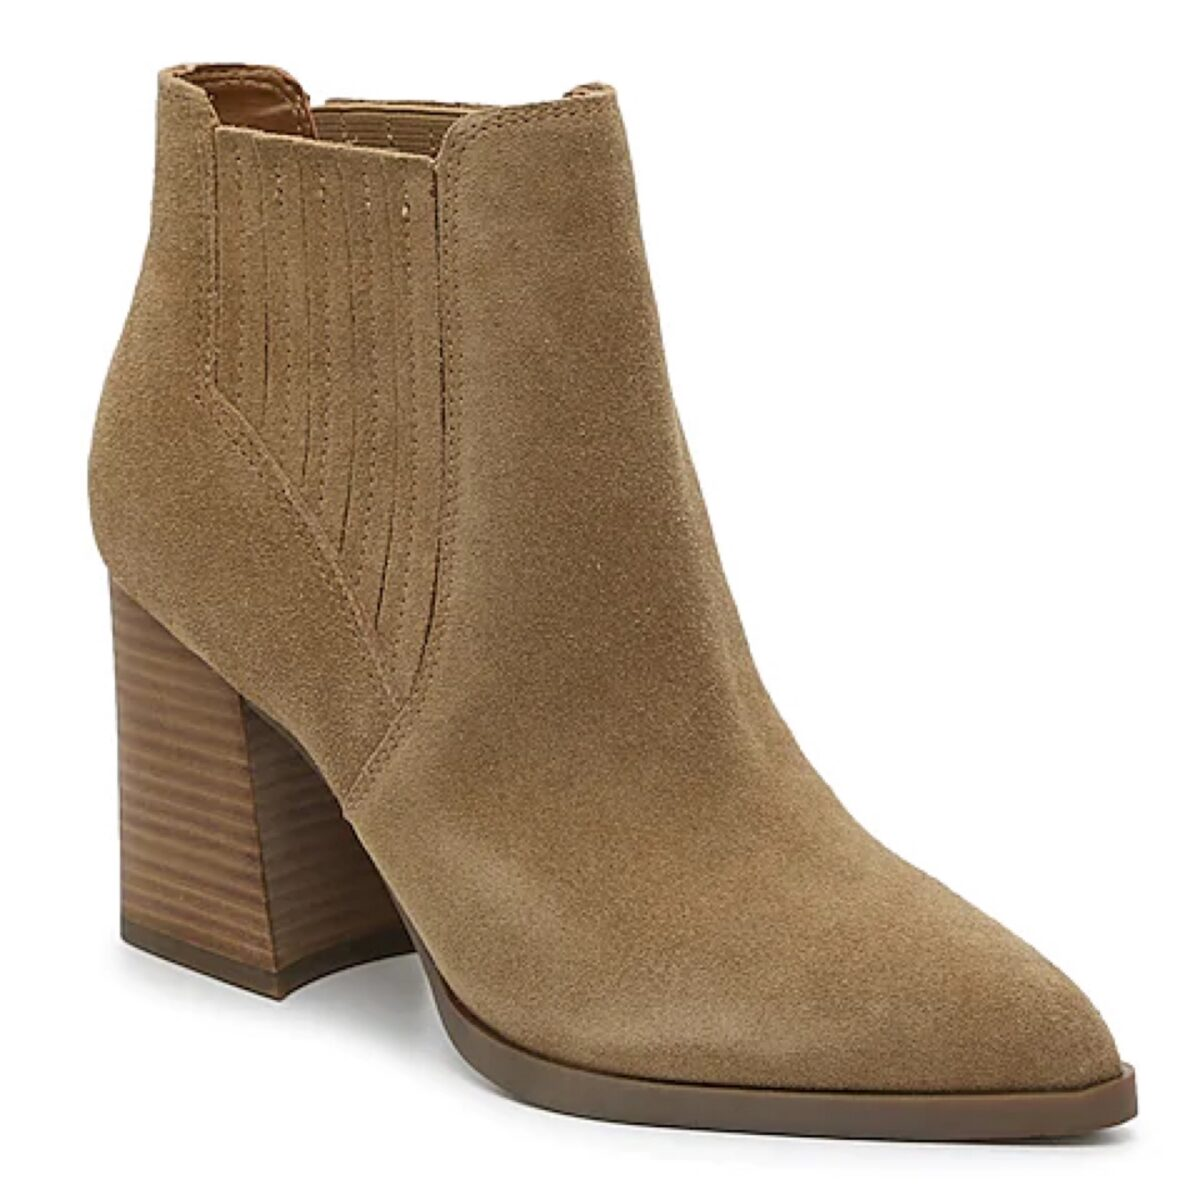 EILISE BOOTIES